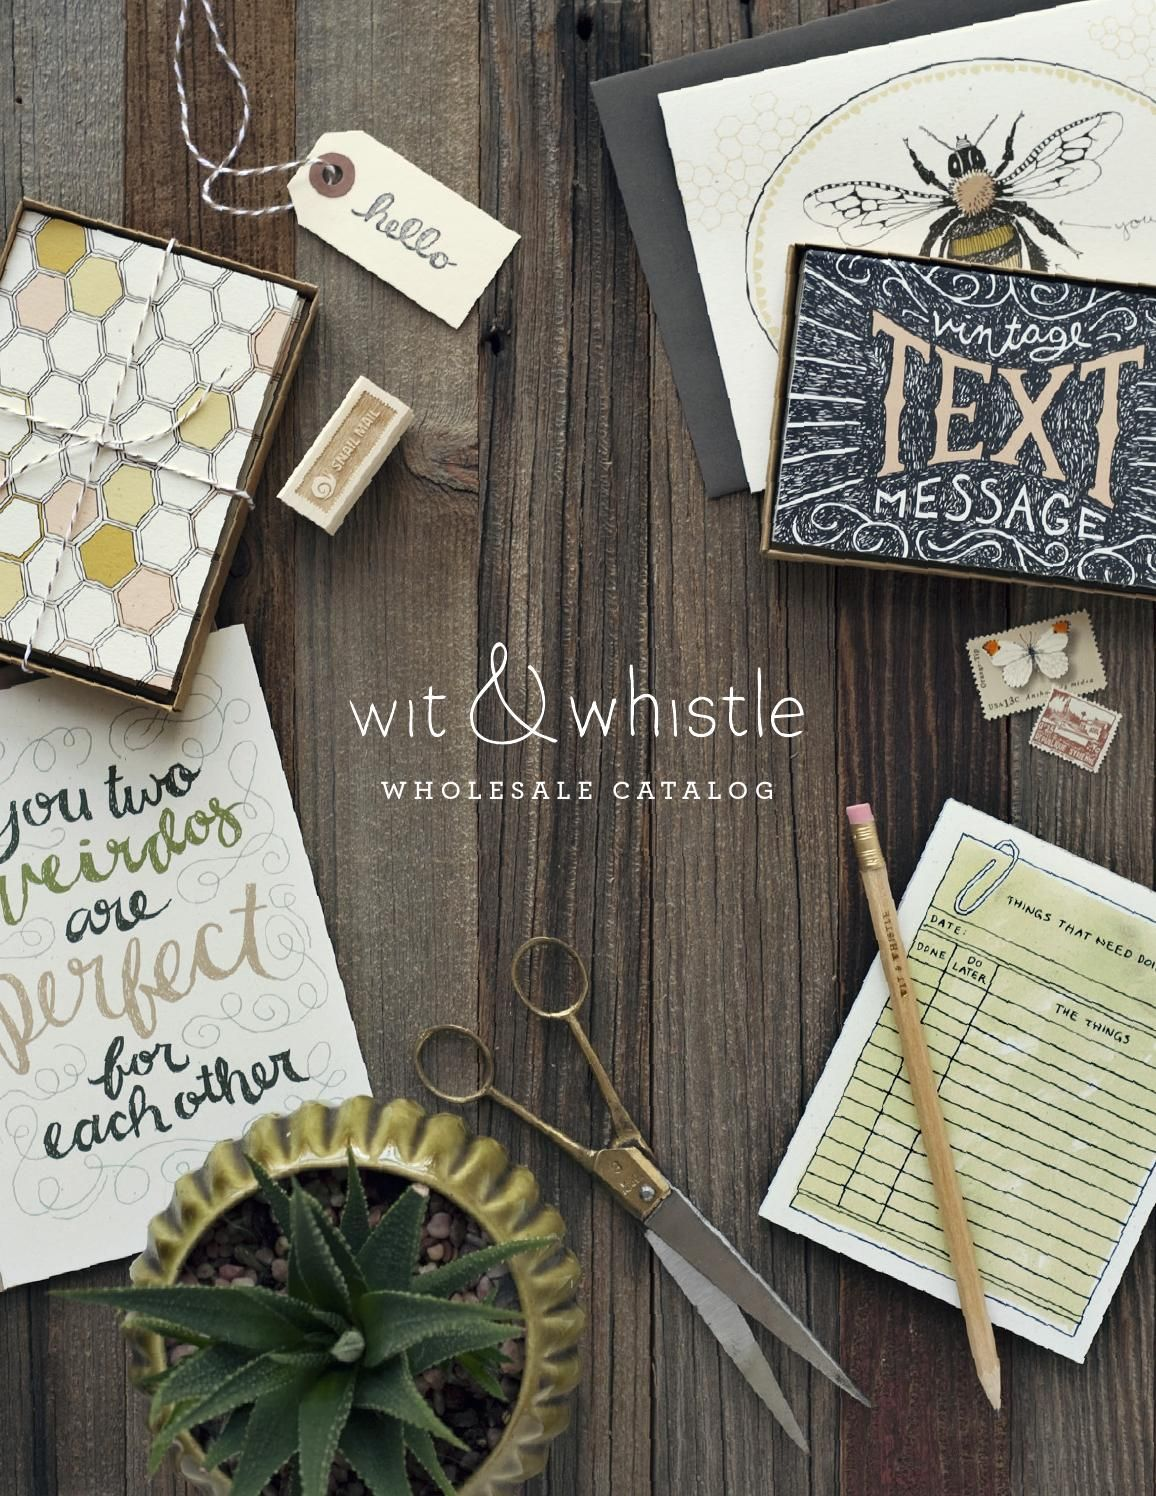 Wit whistle wholesale catalog catalog design this is the 2015 wit whistle wholesale catalog filled with greeting cards kristyandbryce Gallery